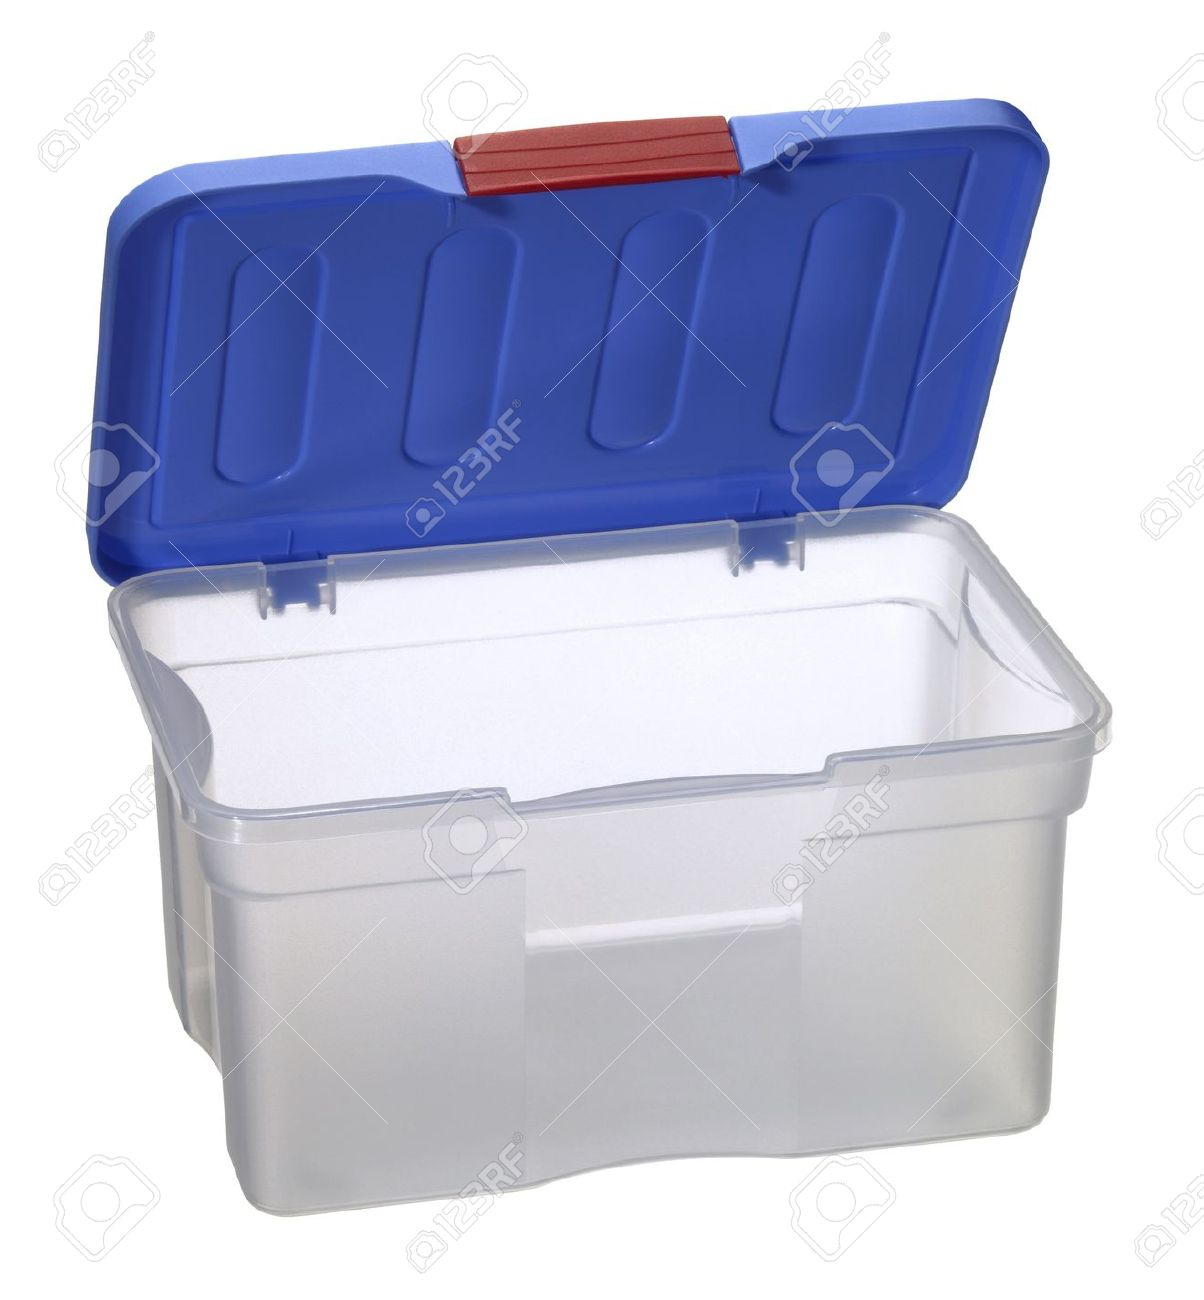 studio photography of a translucent plastic box with open blue top isolated on white with clipping path Stock Photo - 10840010